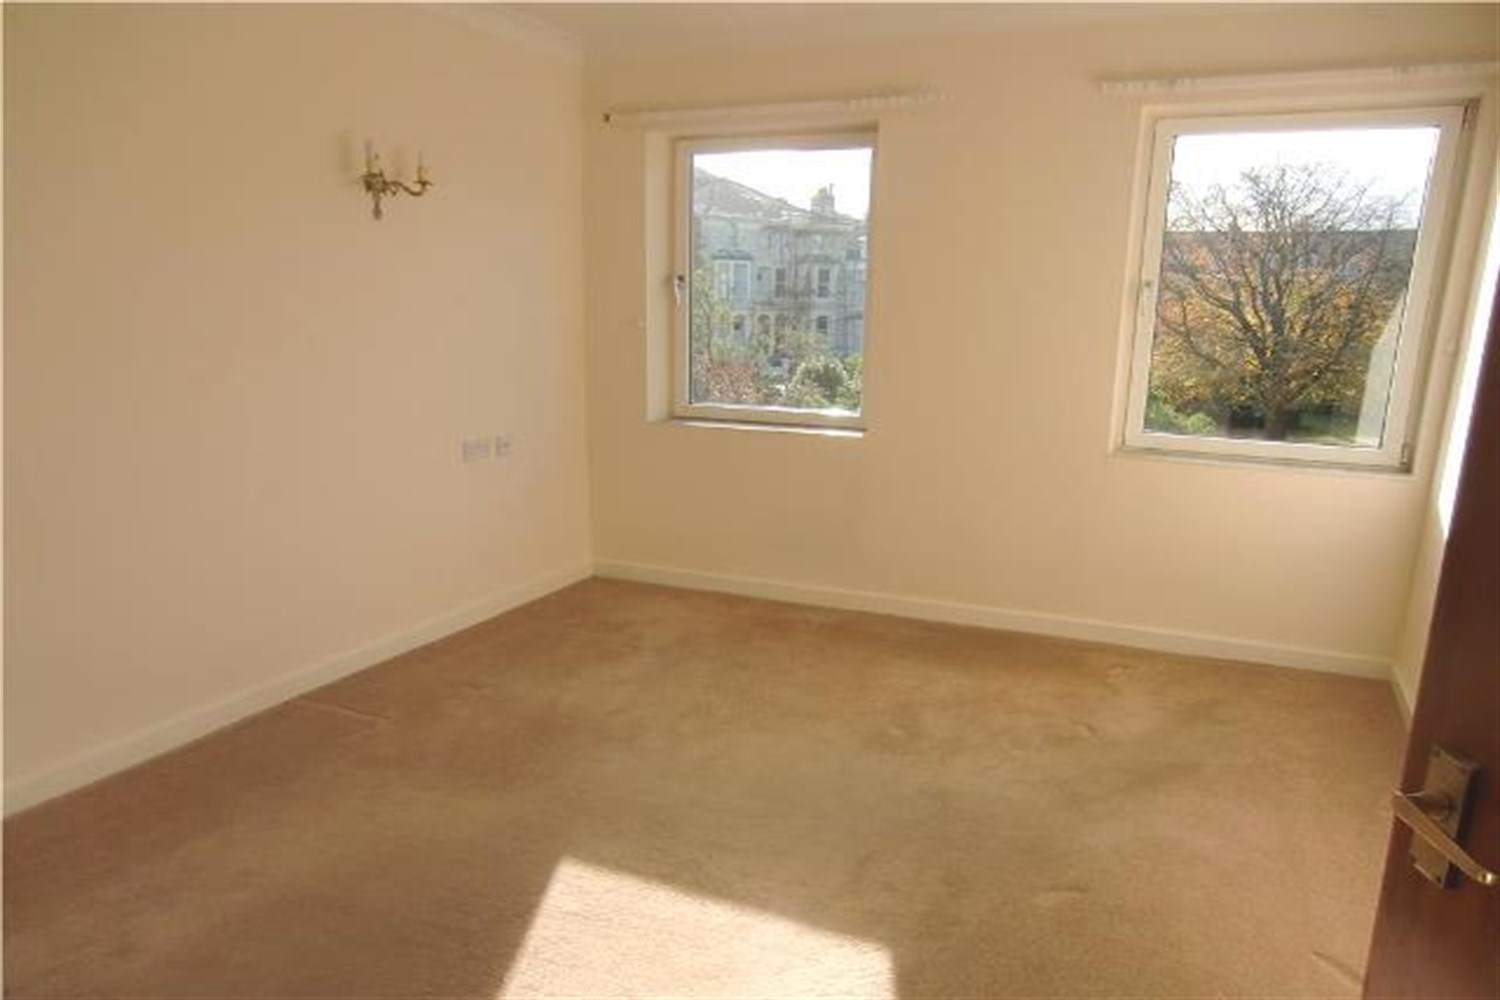 Scarborough, North Yorkshire 1 bedroom to let